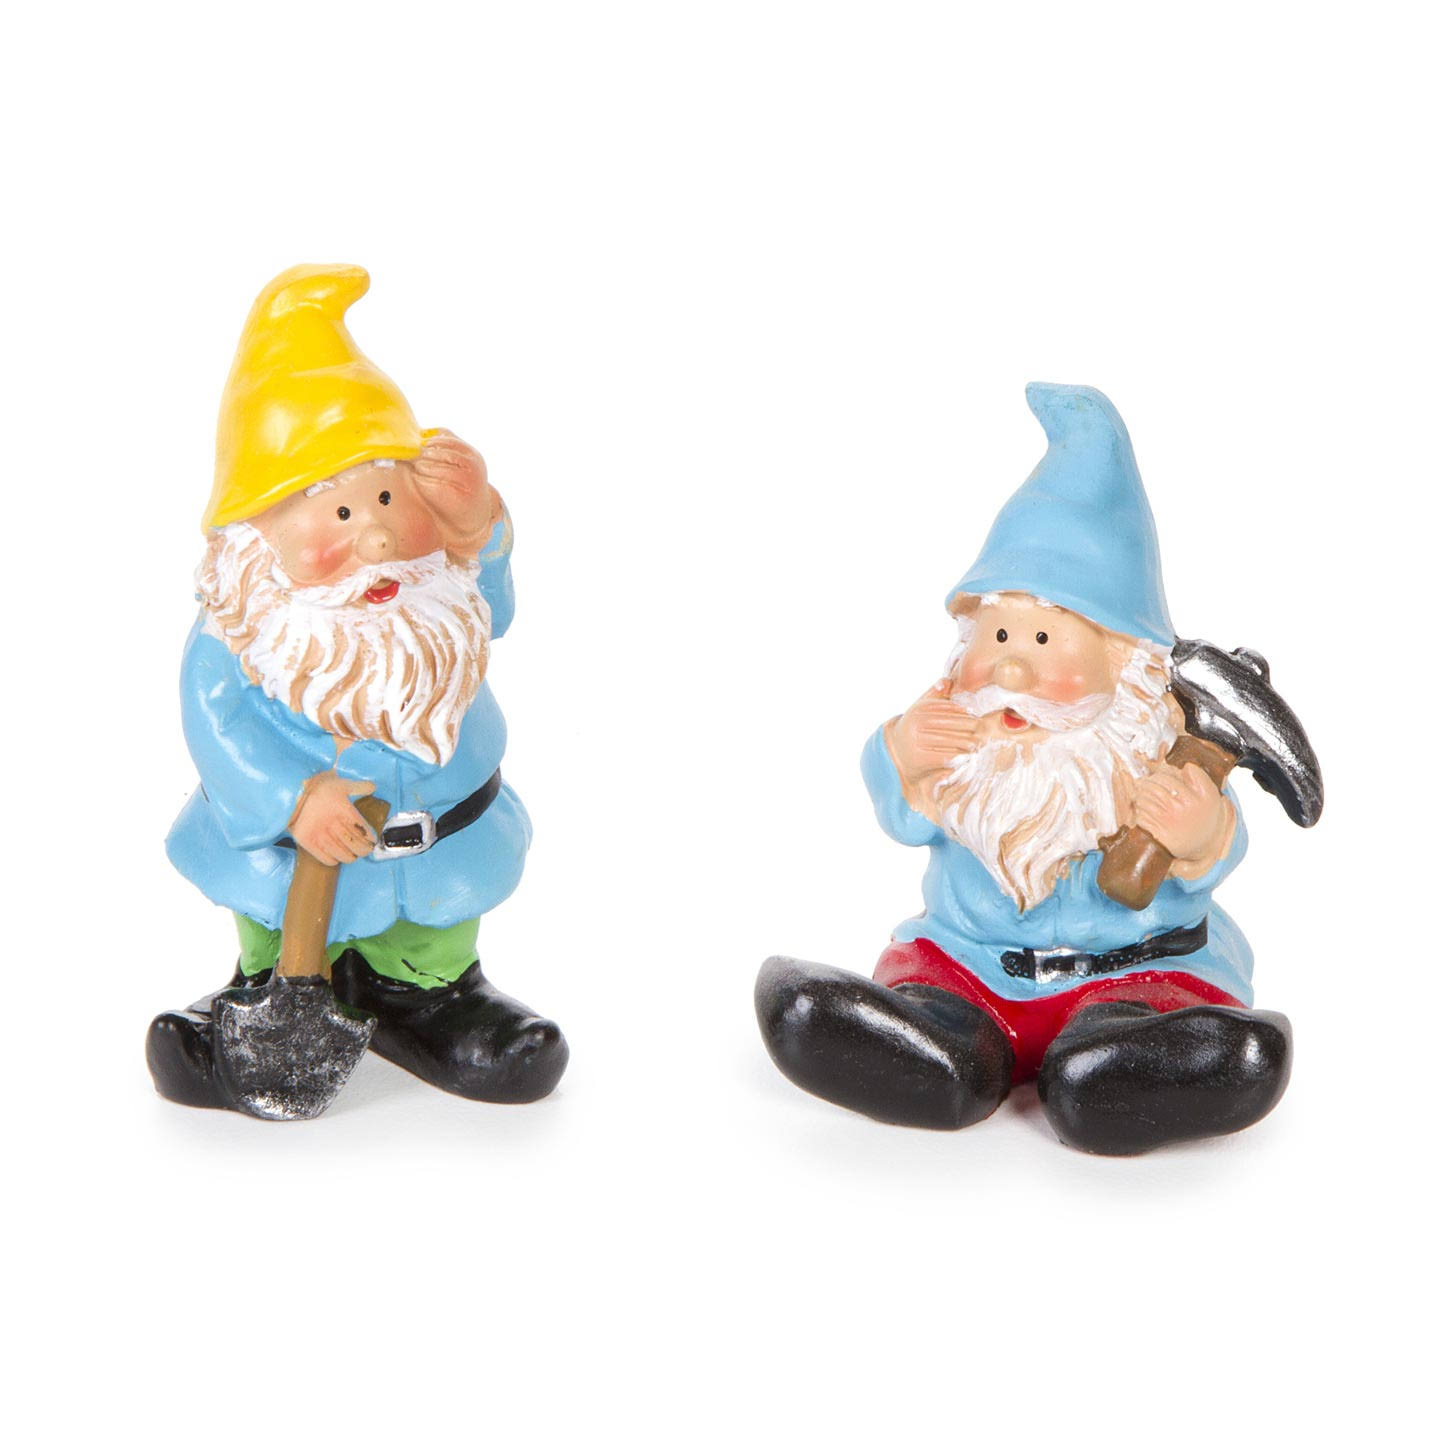 Darice Miniature Gnome Figurines - Shovel and Pick Gnomes - 1 Set